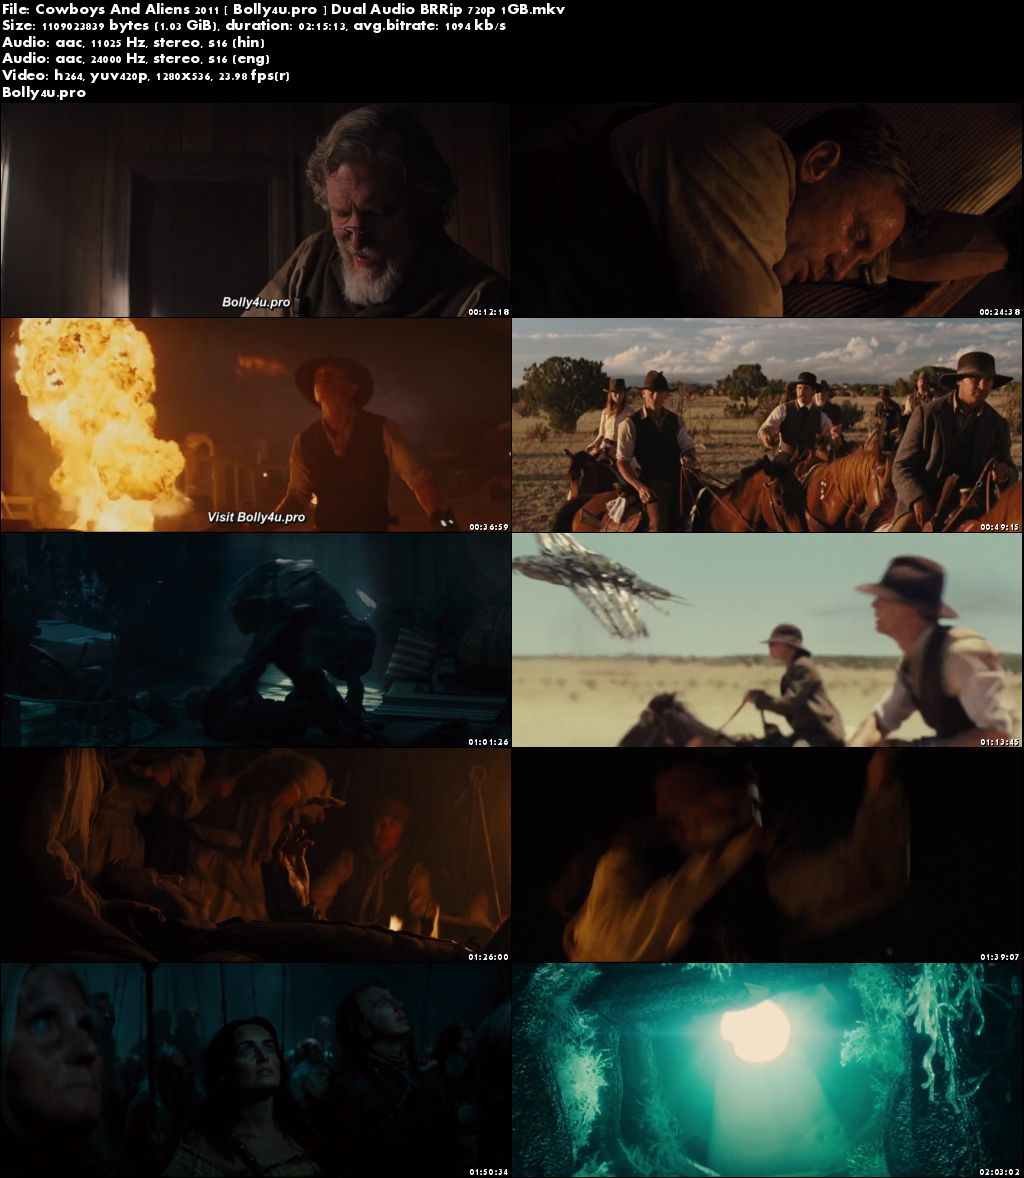 cowboys and aliens 2011 download